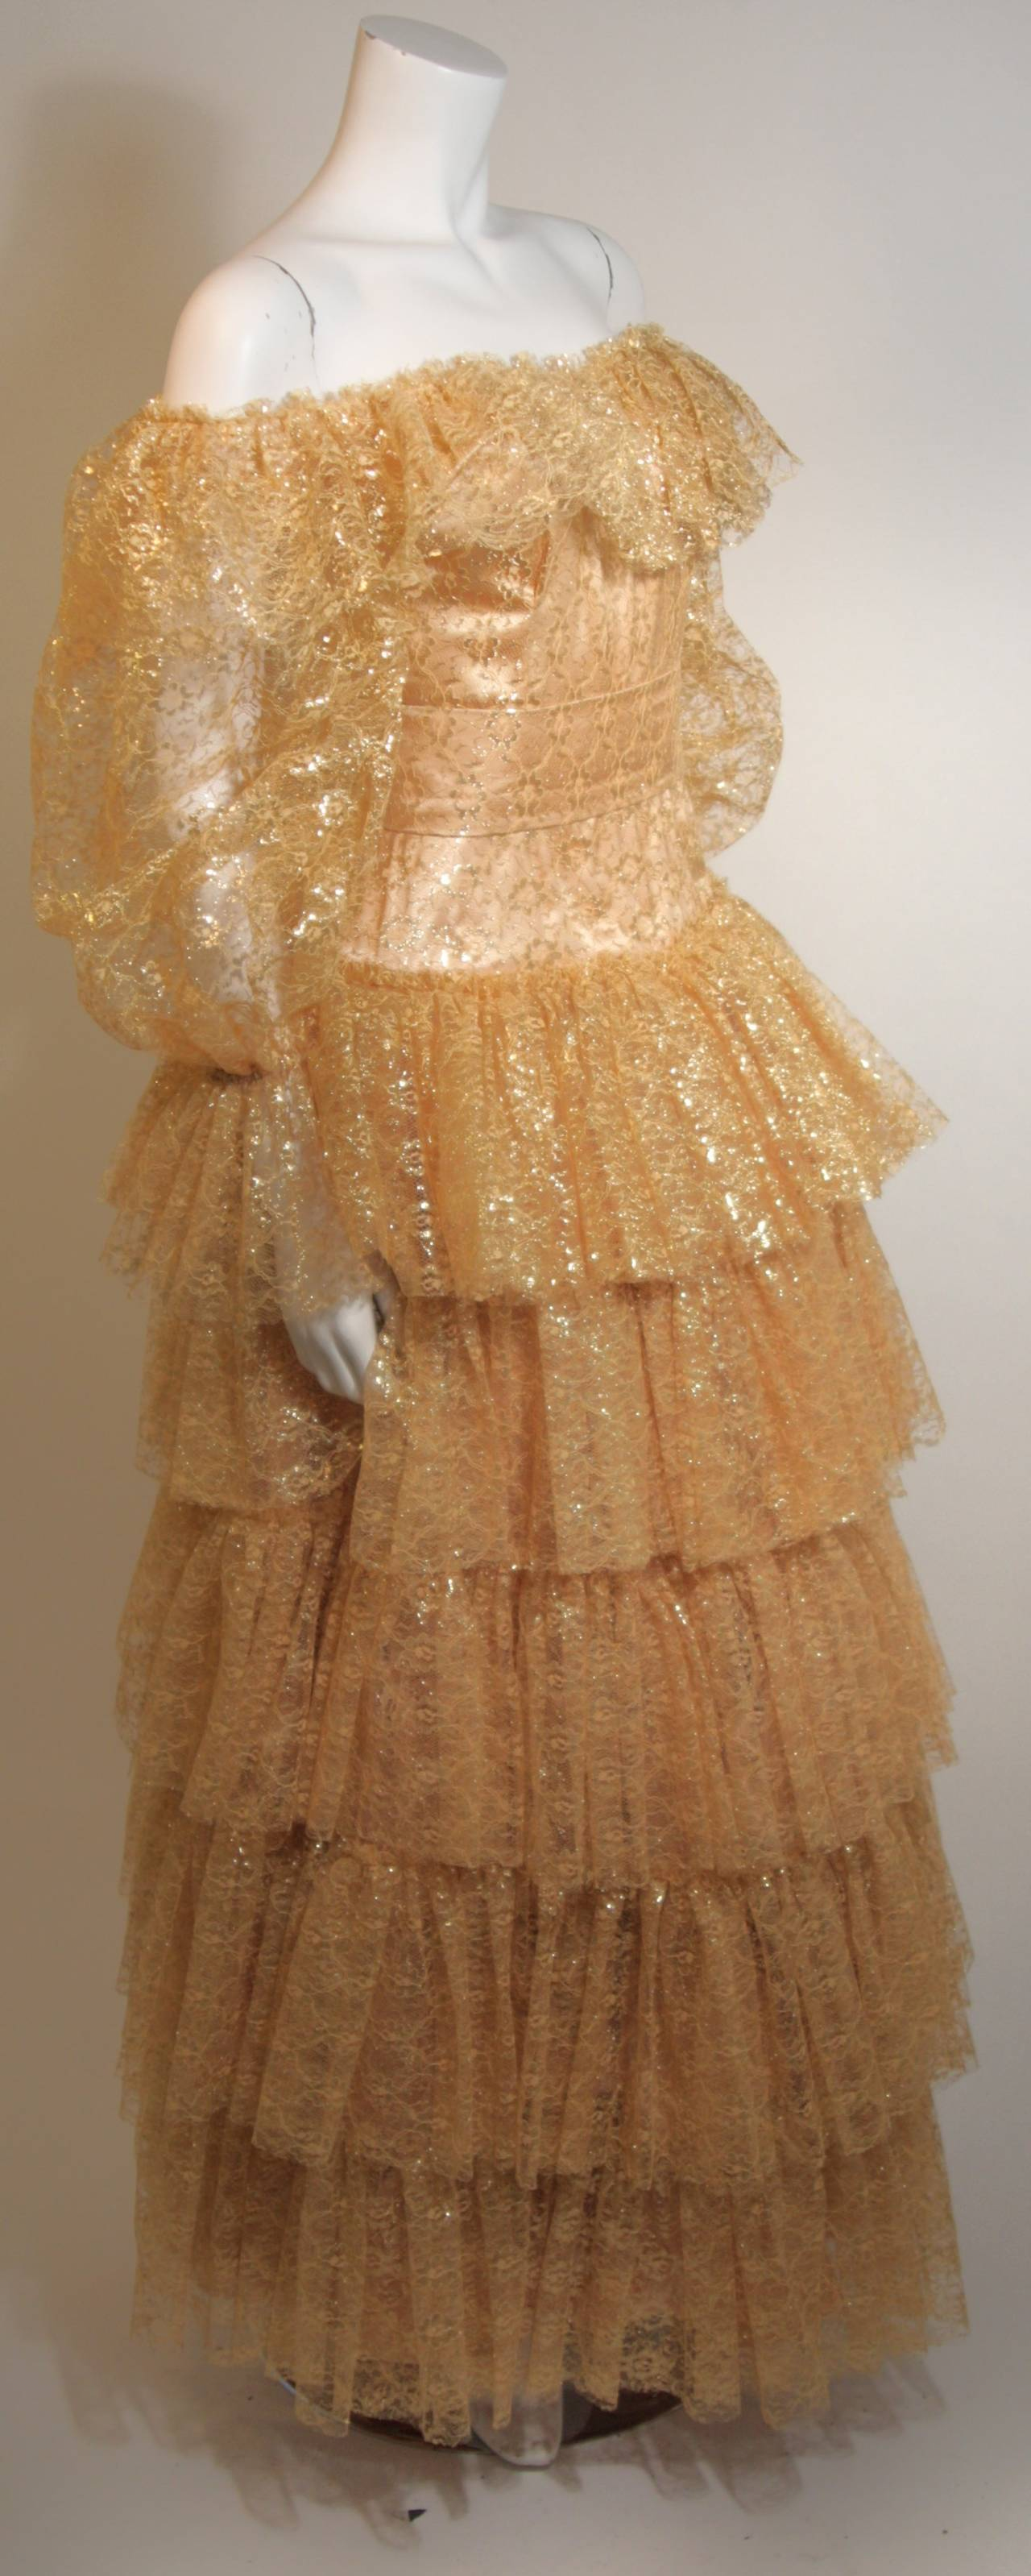 Attributed to Travilla Gold Tiered Lace Ball Gown with sheer lace sleeves size 4 3